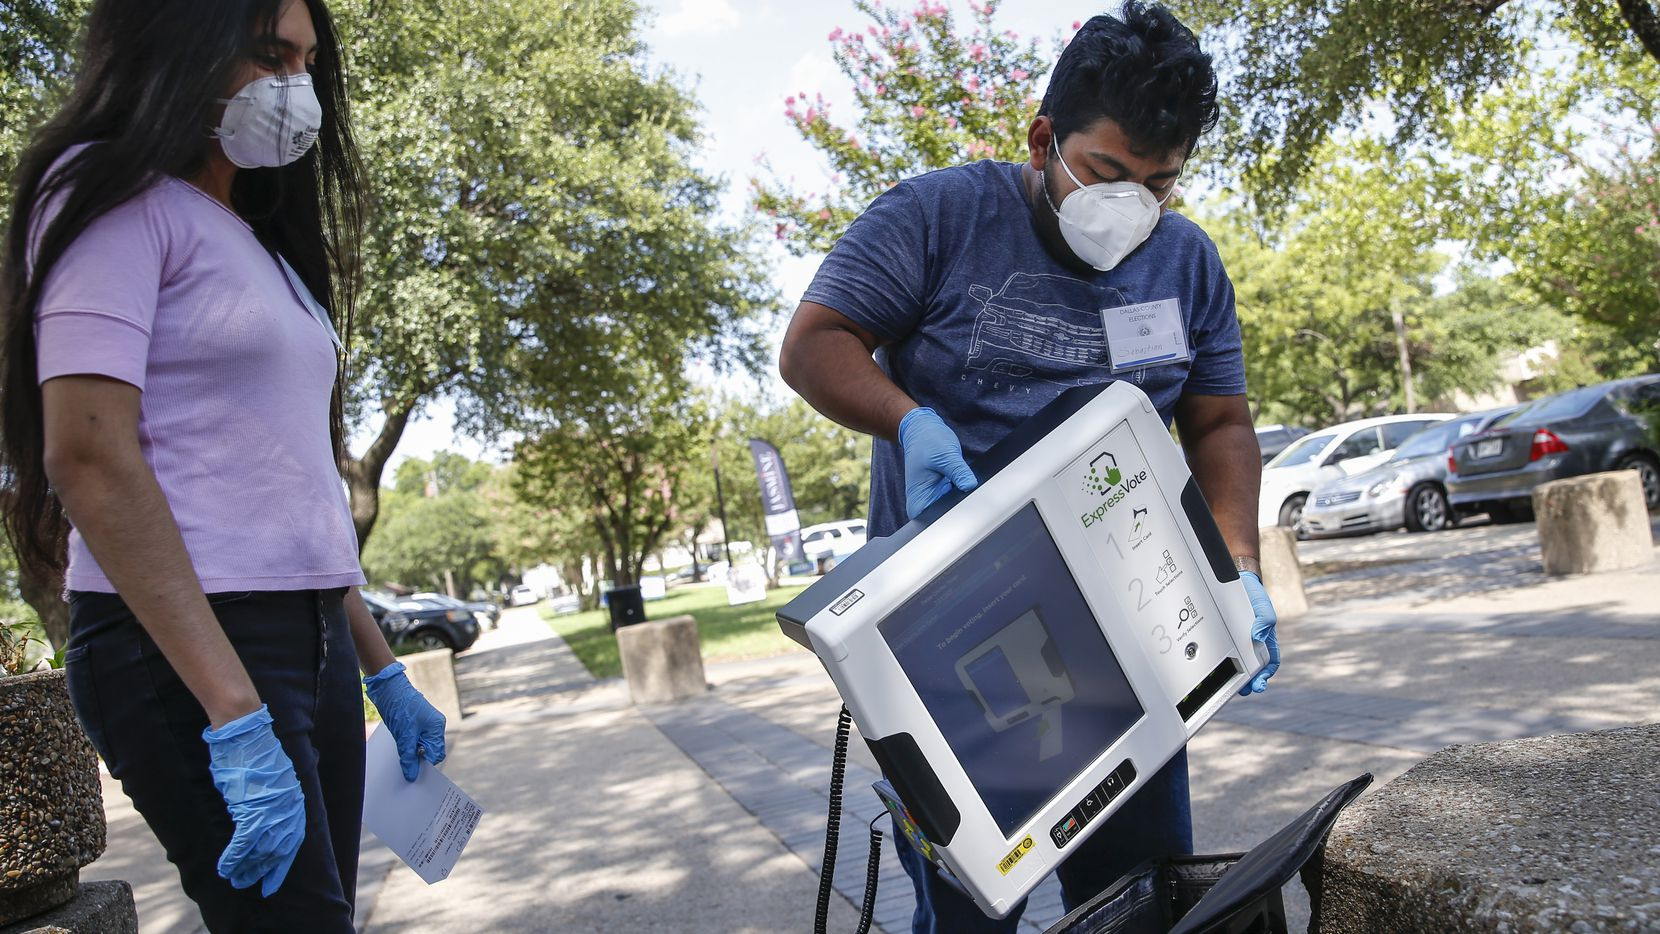 High school poll workers Sebastian Roman (right), 18, and Diana Paulin, 18, put away an electronic voting machine as they work a curbside voting lane during early voting at Beckley Courthouse on July 9, 2020 in Dallas. (Ryan Michalesko/The Dallas Morning News)